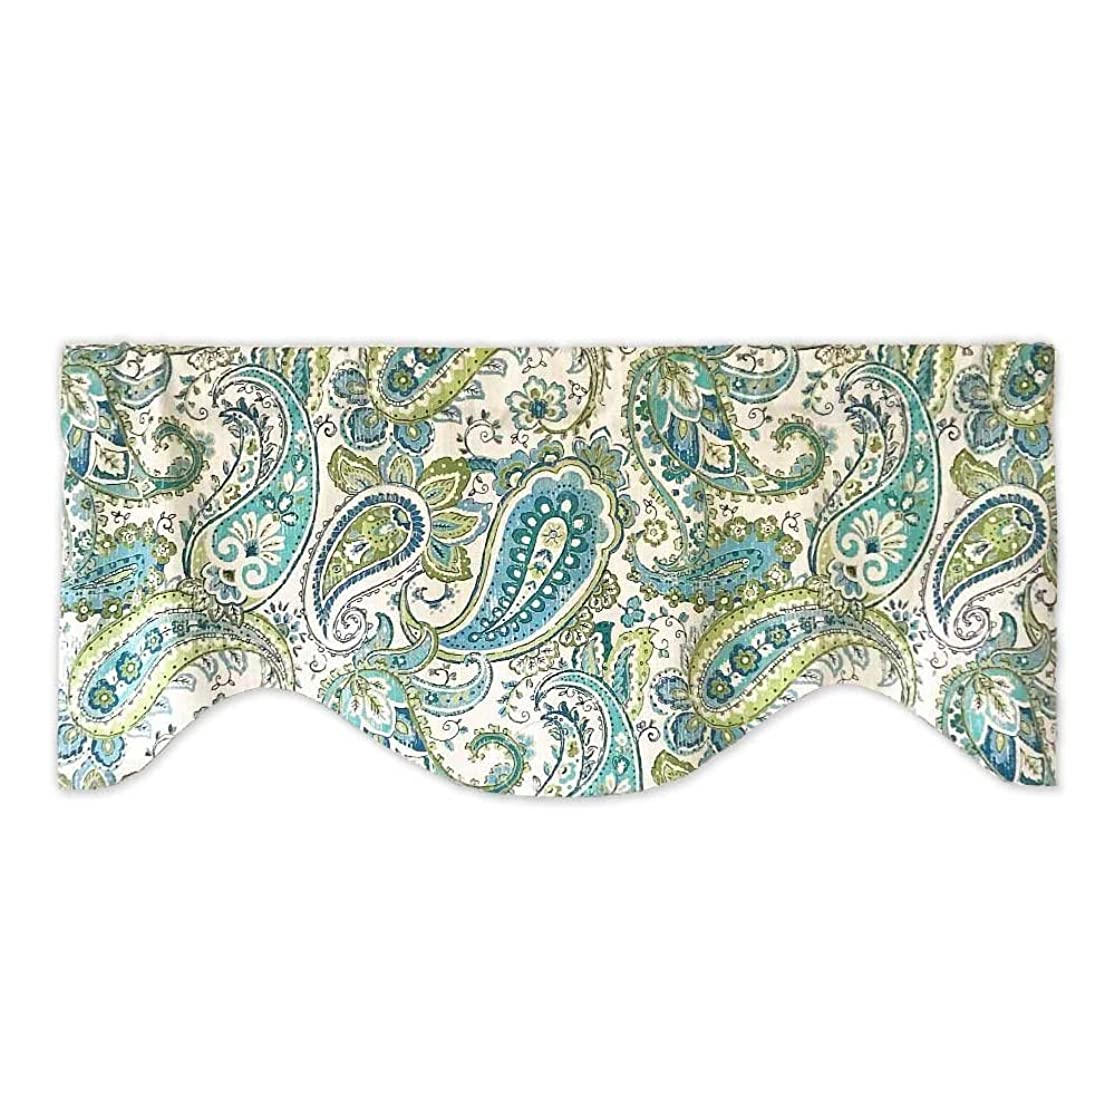 Teal and Sage Green Floral Paisley Valance jpqqpdmv8